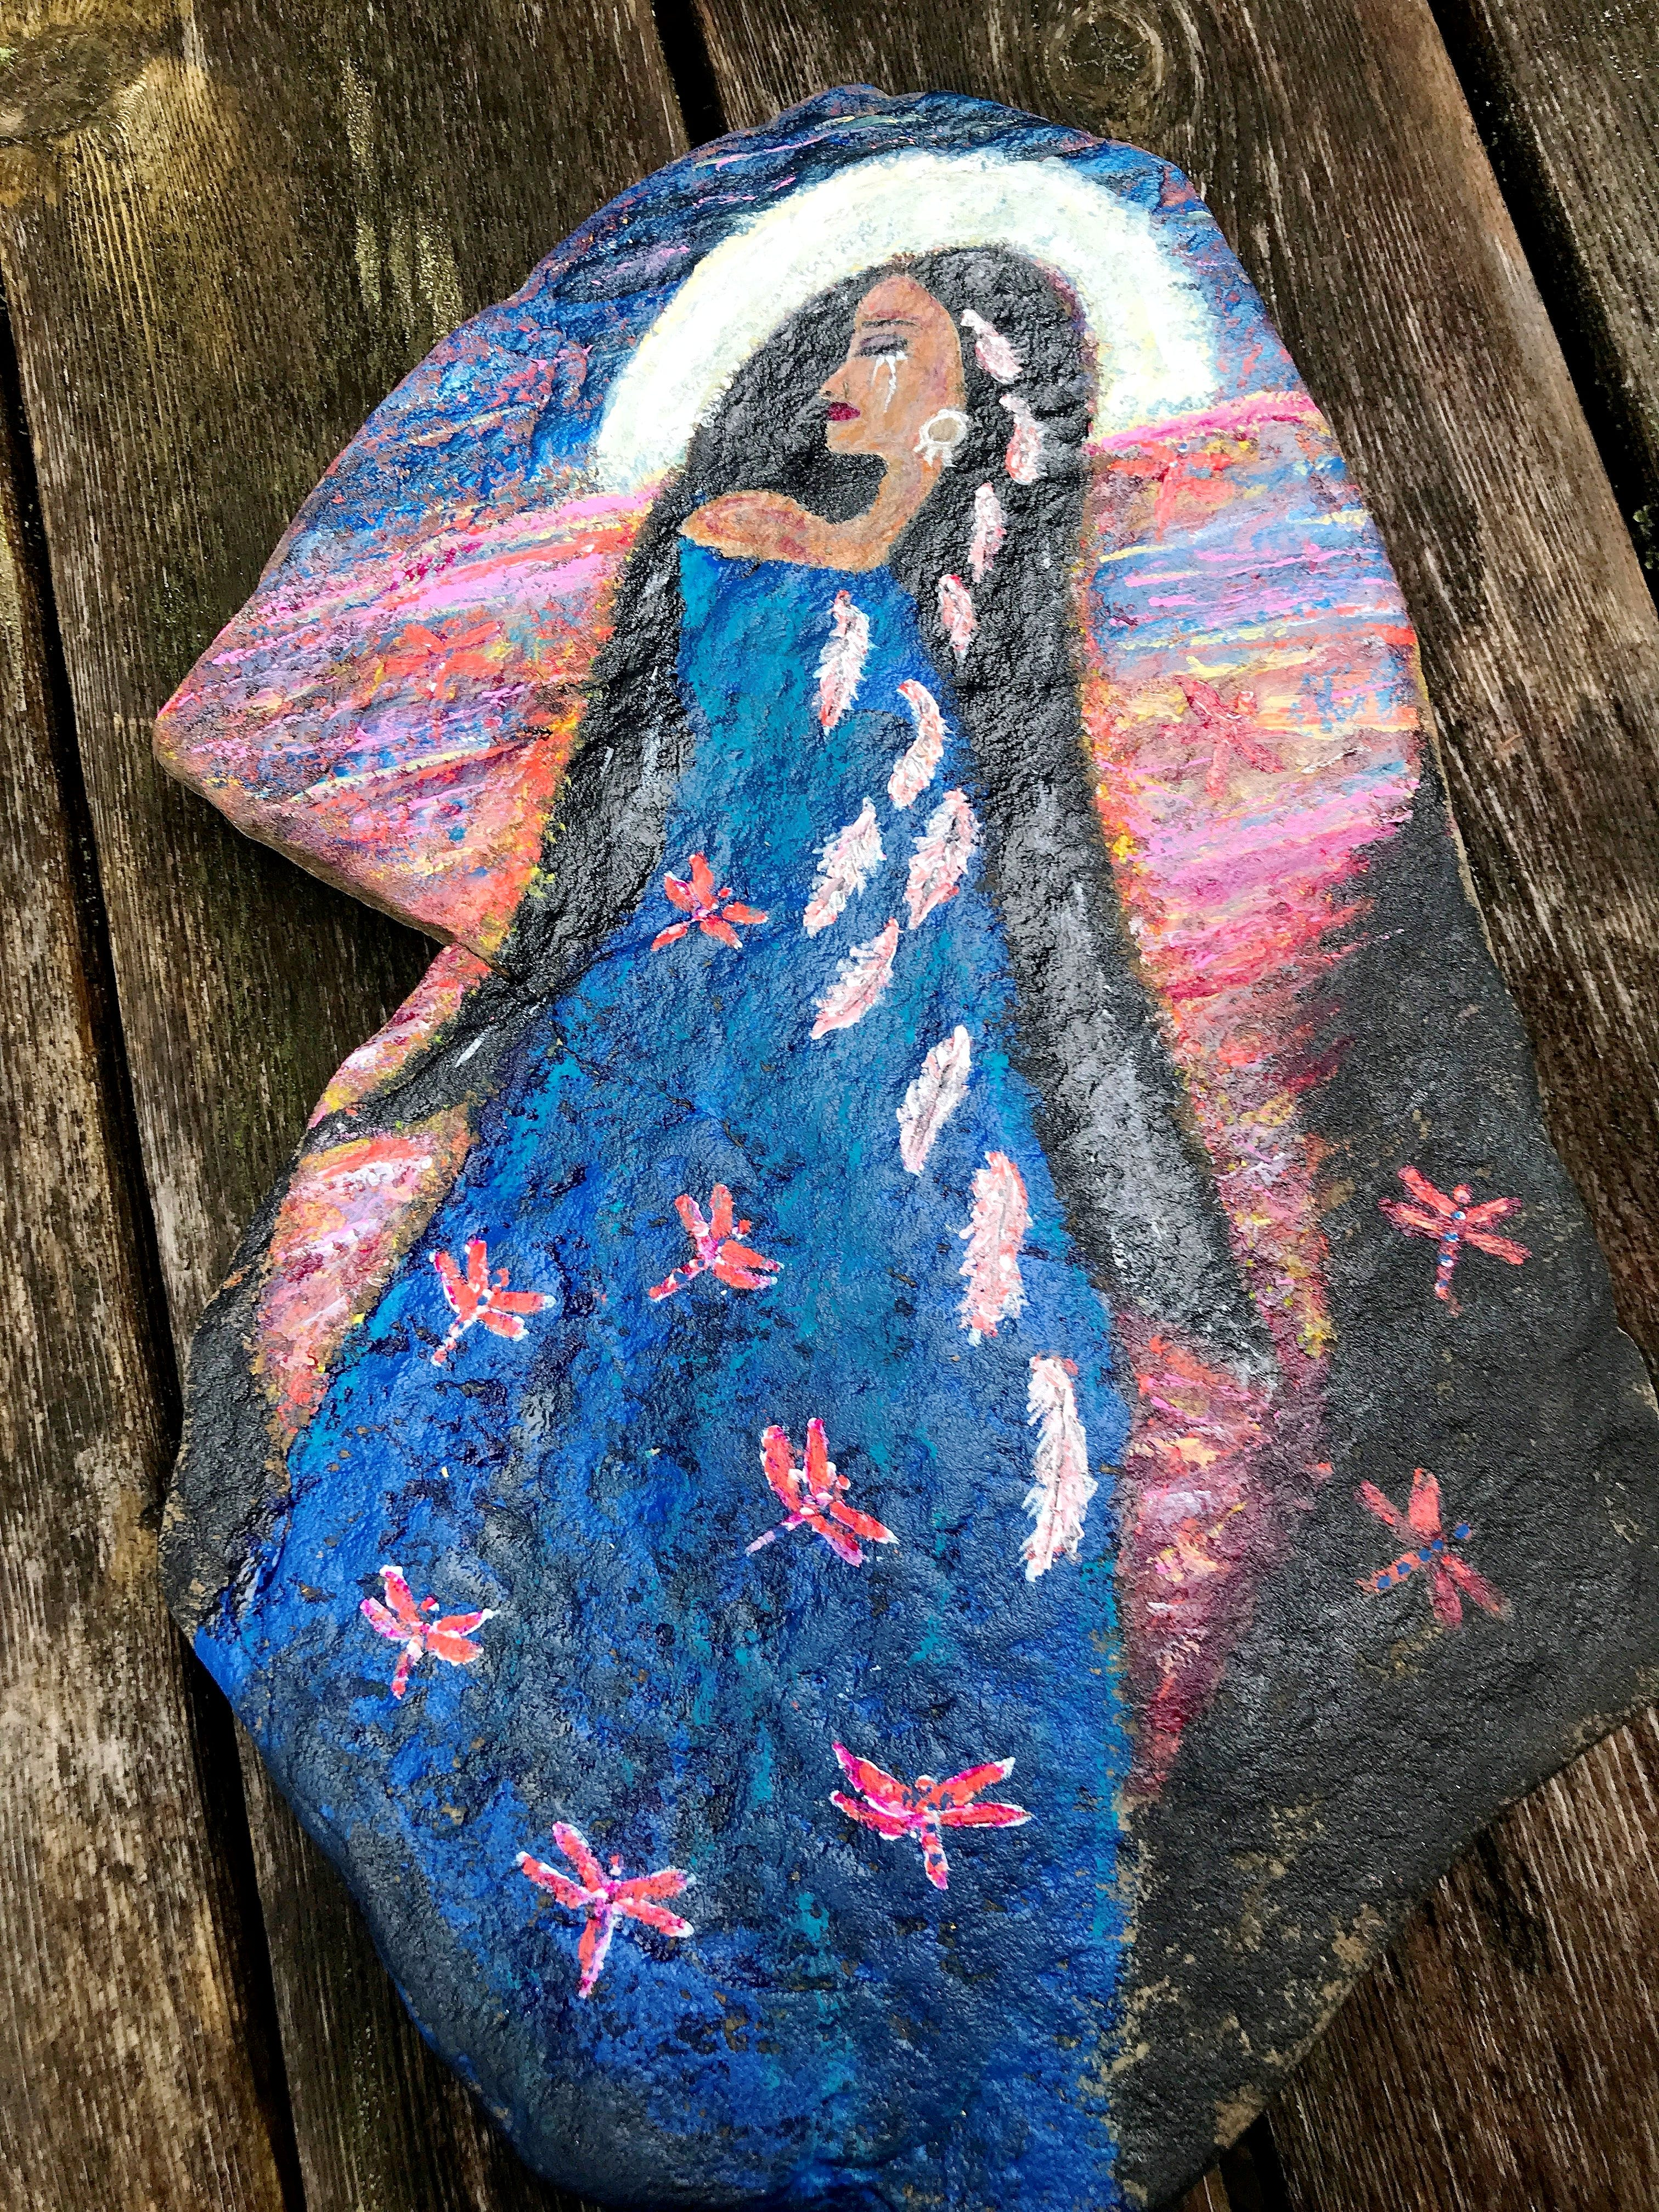 Isn't this rock magnificent?  Kim Dickinson painted this rock with acrylic in honour of the Indigenous children who never returned home. It goes with a stirring poem she wrote, Whispers & Wings.